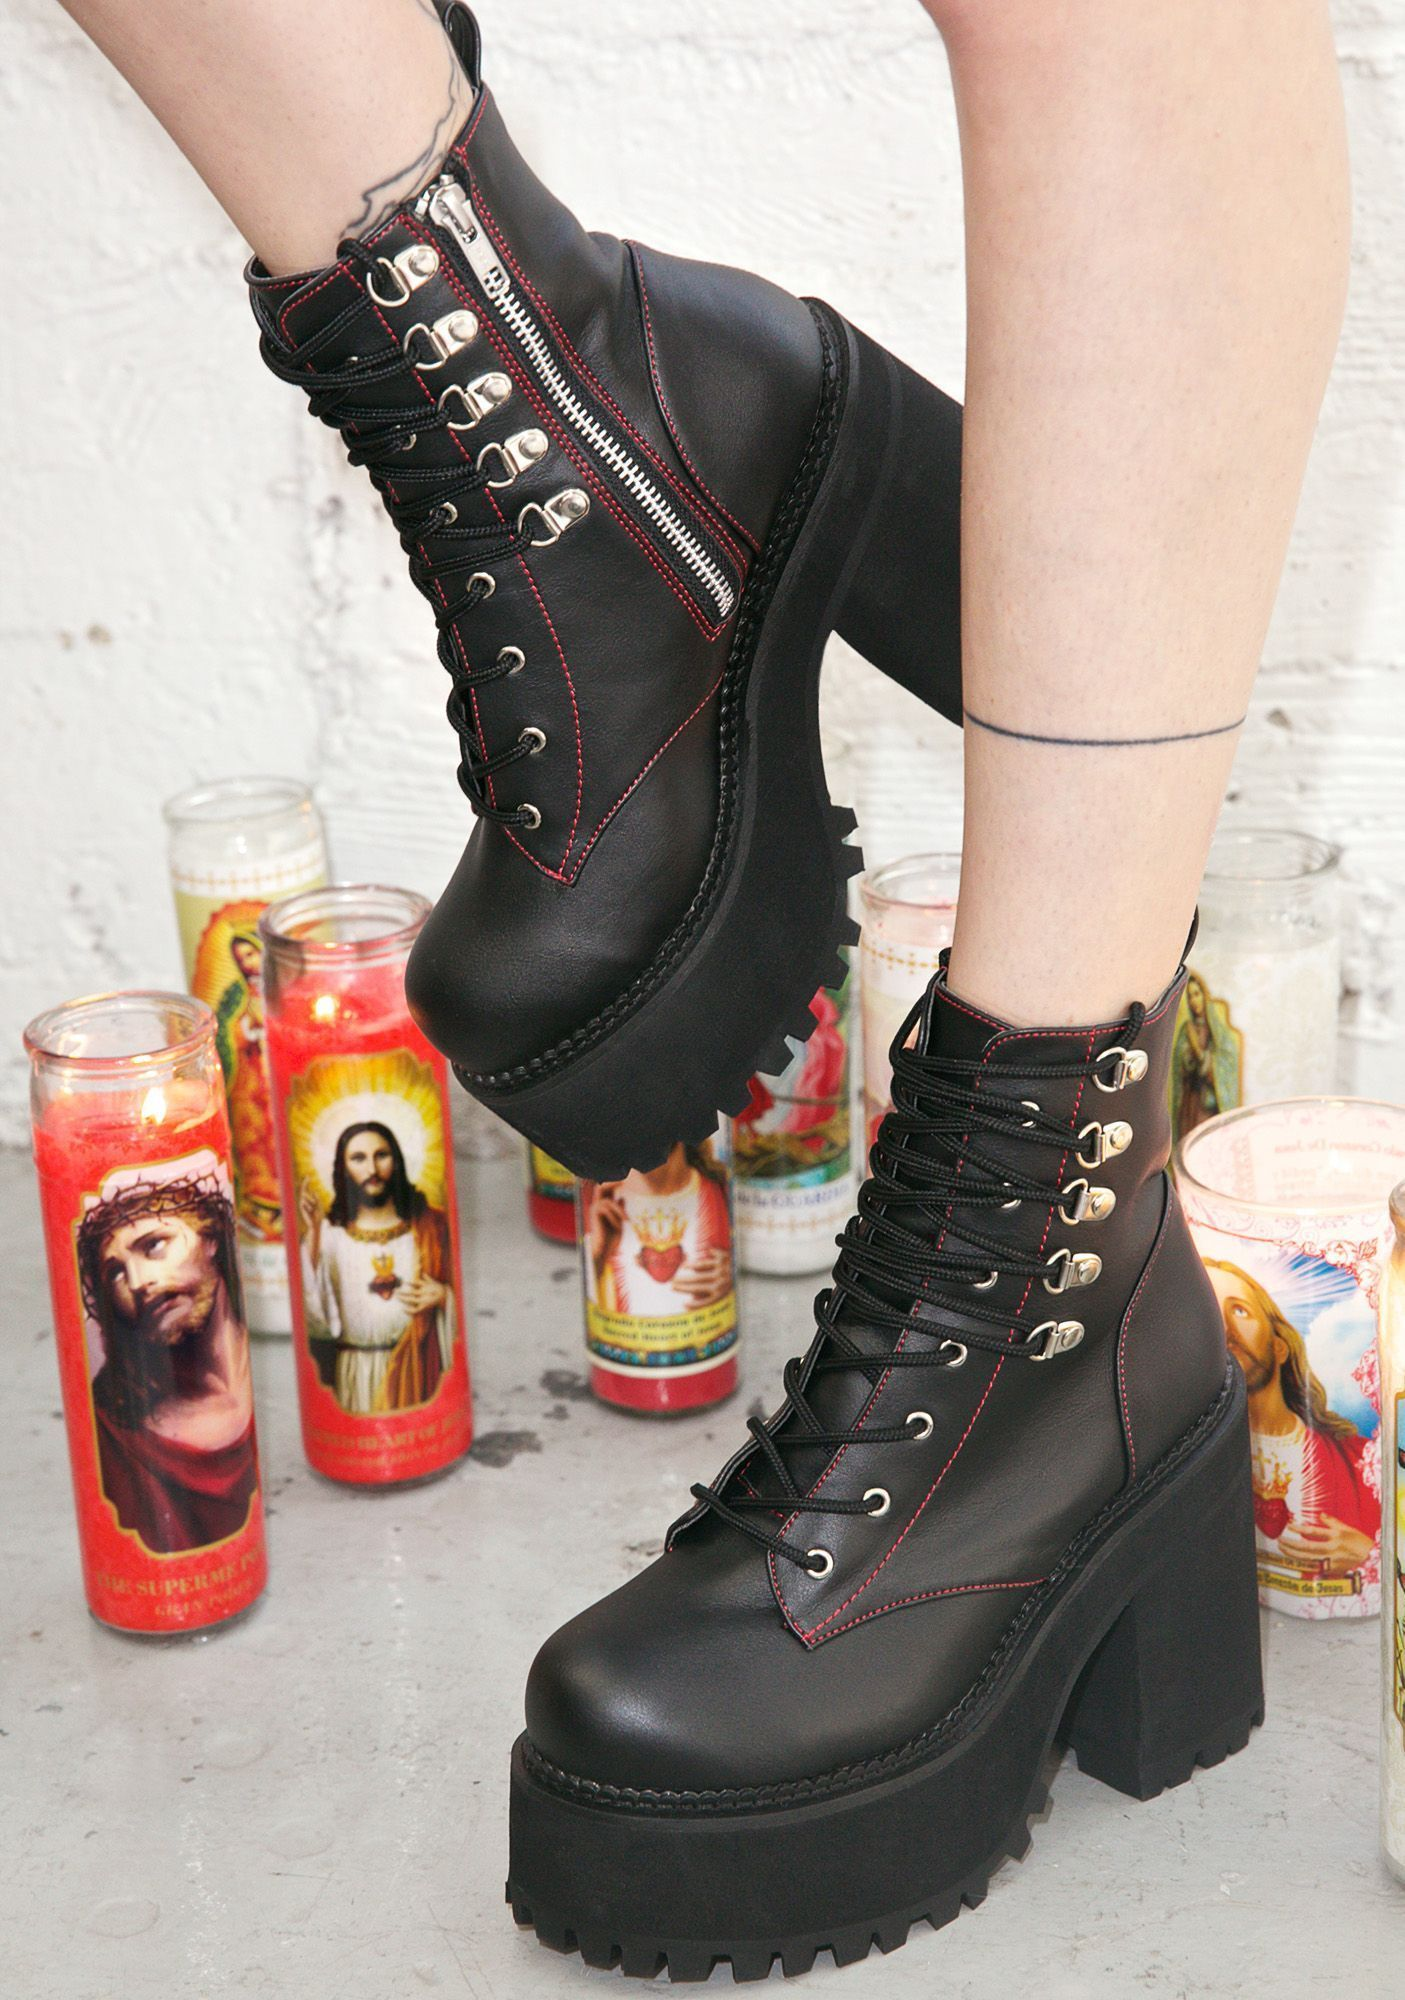 Demonia Deathstalker Vegan Leather Goth Boots Love The Shoes The Candles Make The Pic Awkward Thoughlol Anklebootsoutfit Boots Goth Boots Gothic Shoes